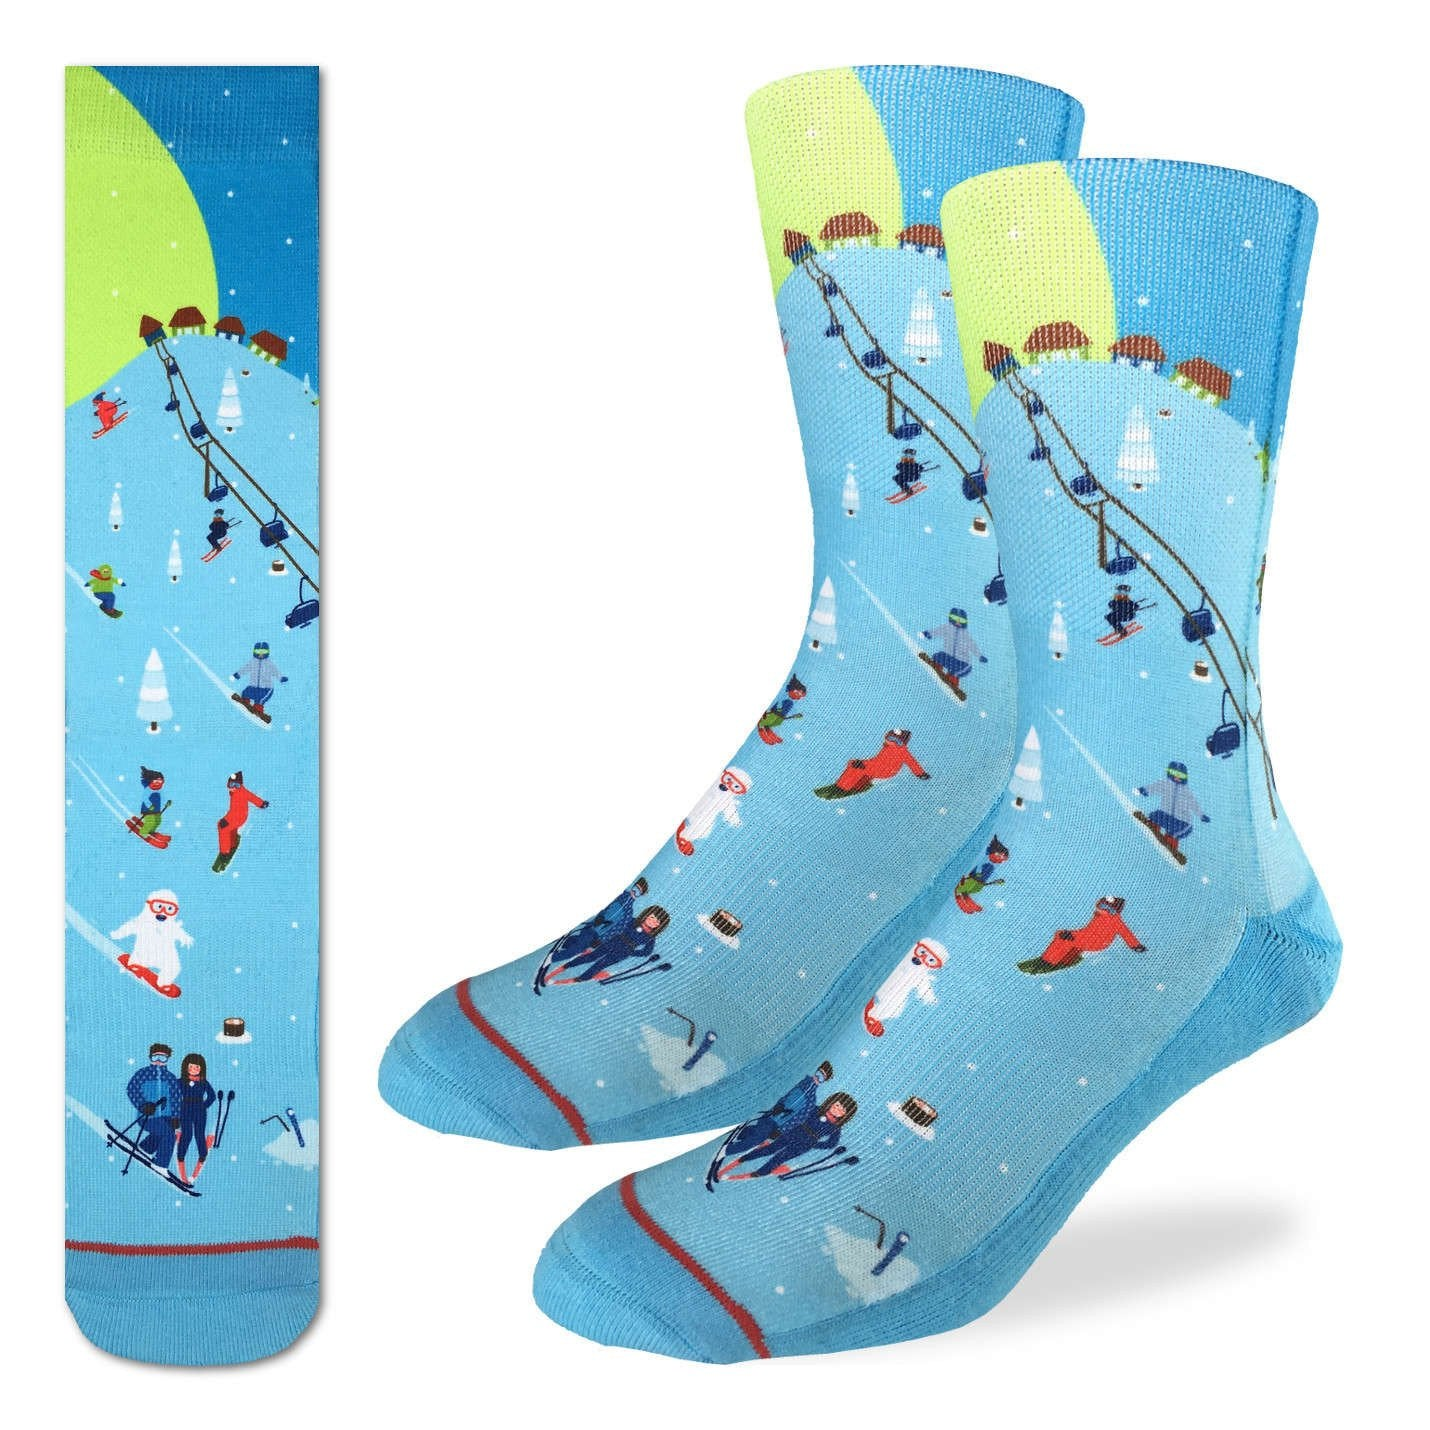 Men's Skiing Socks - Good Luck Sock